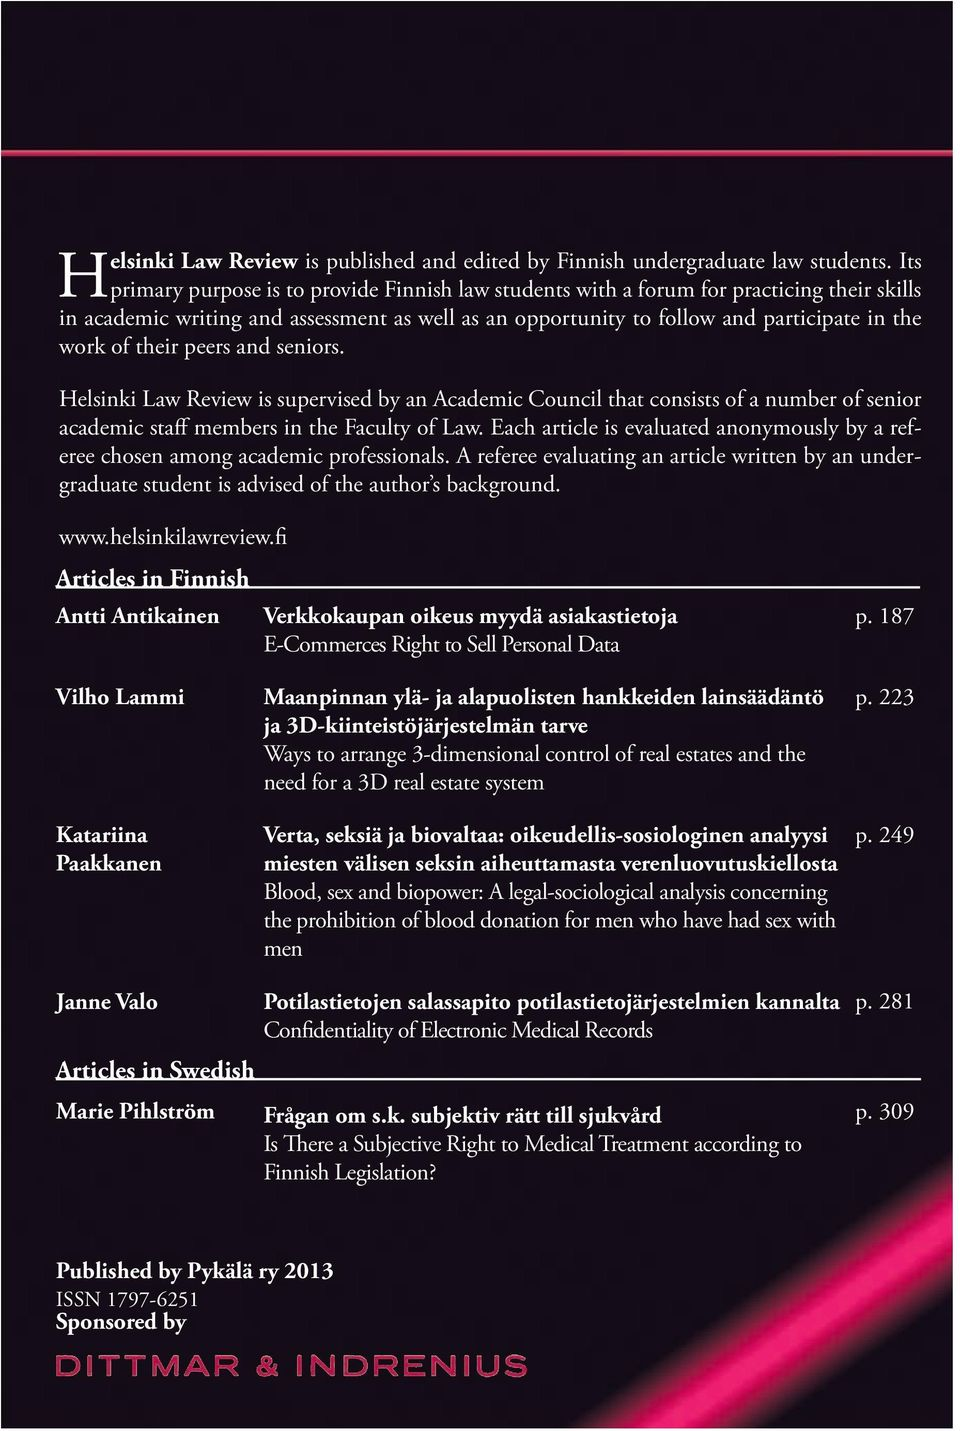 their peers and seniors. Helsinki Law Review is supervised by an Academic Council that consists of a number of senior academic staff members in the Faculty of Law.